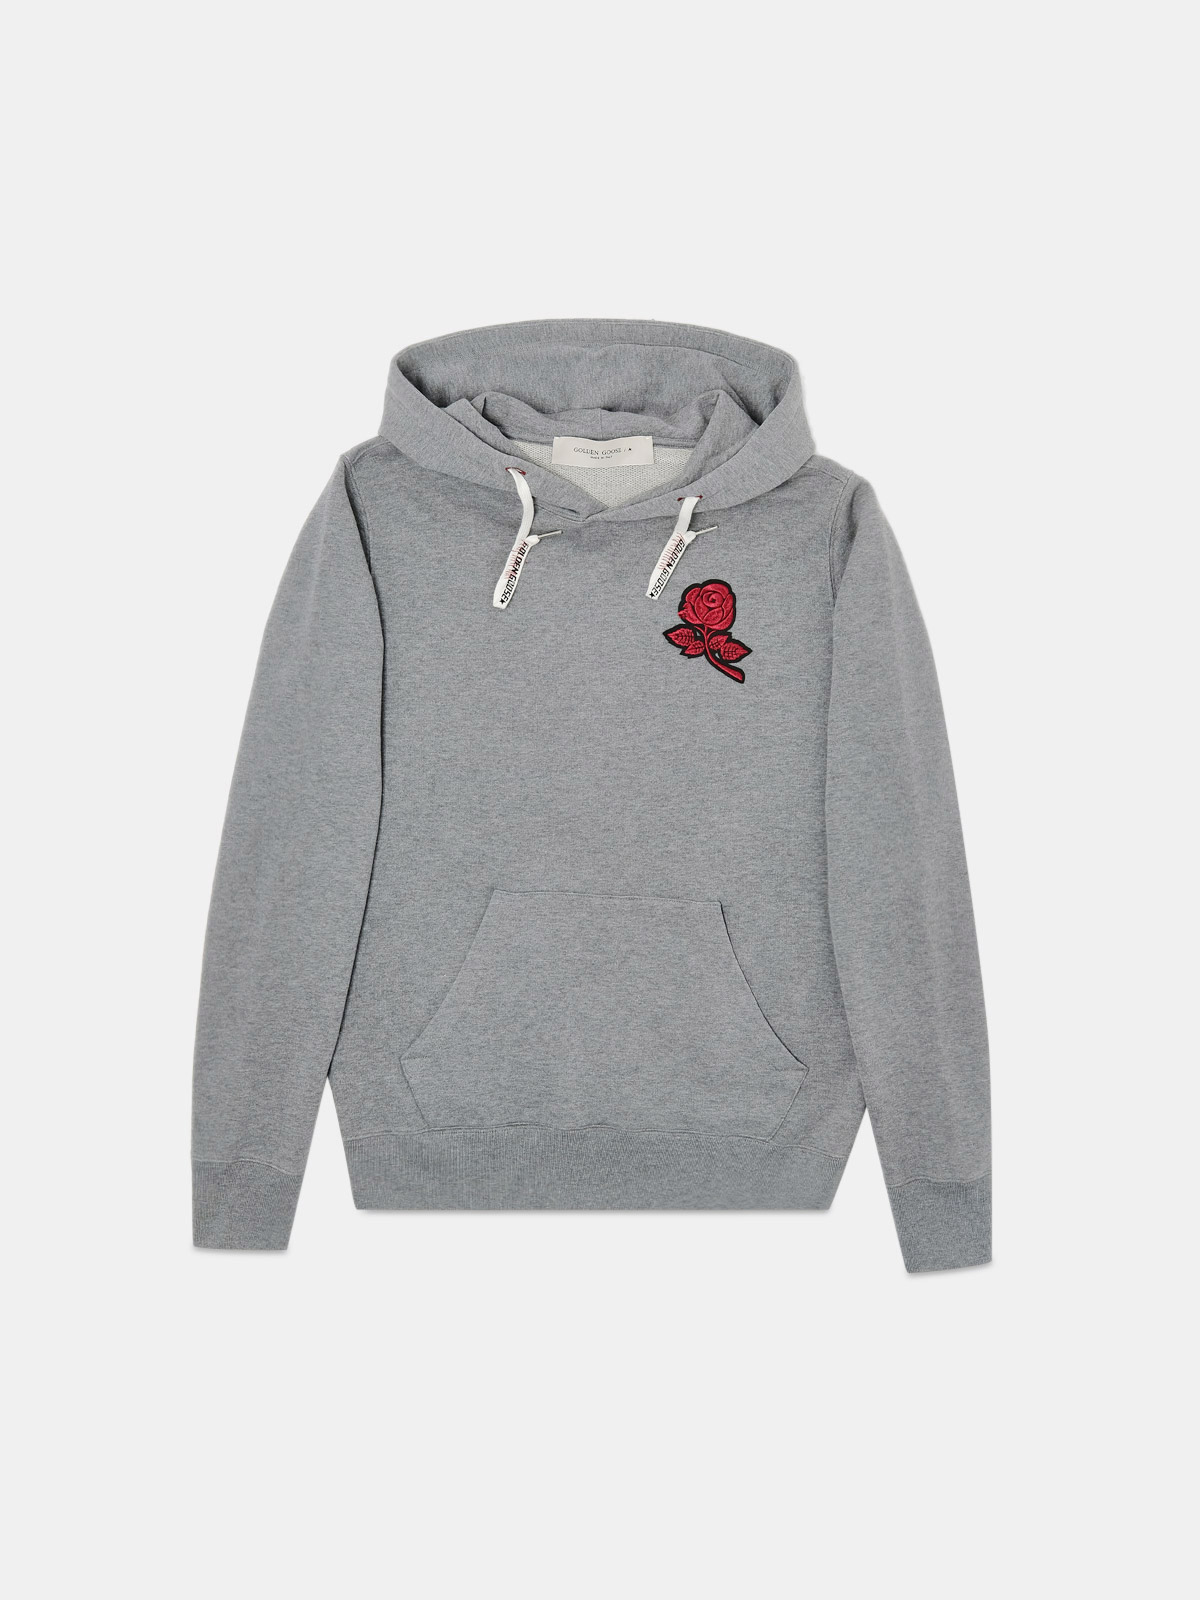 Golden Goose - Alighiero sweatshirt with rose patch on the front in